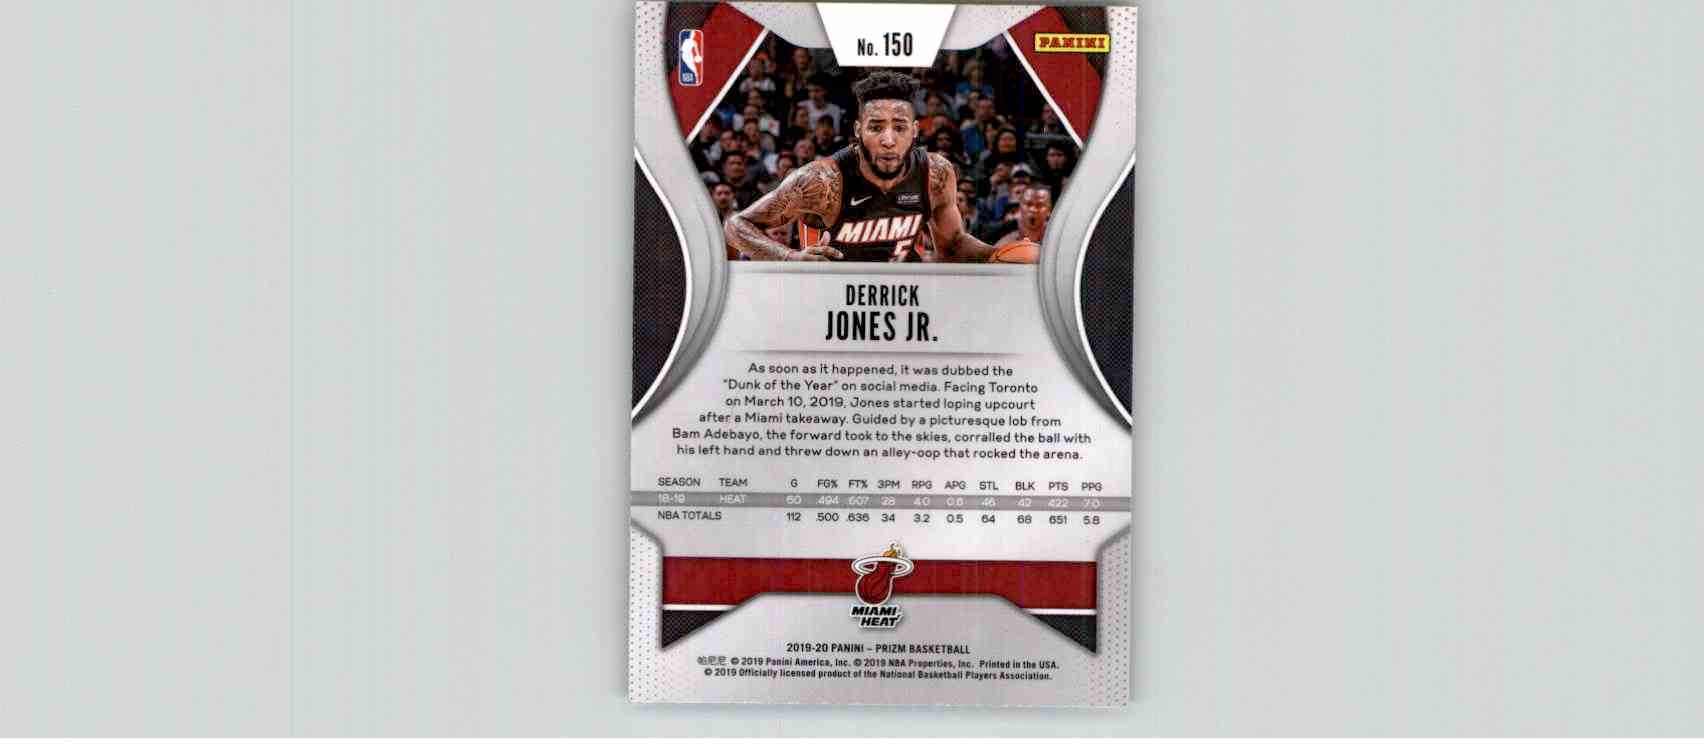 2019-20 Panini Prizm Basketball Prizm Derrick Jones JR. #150 card back image